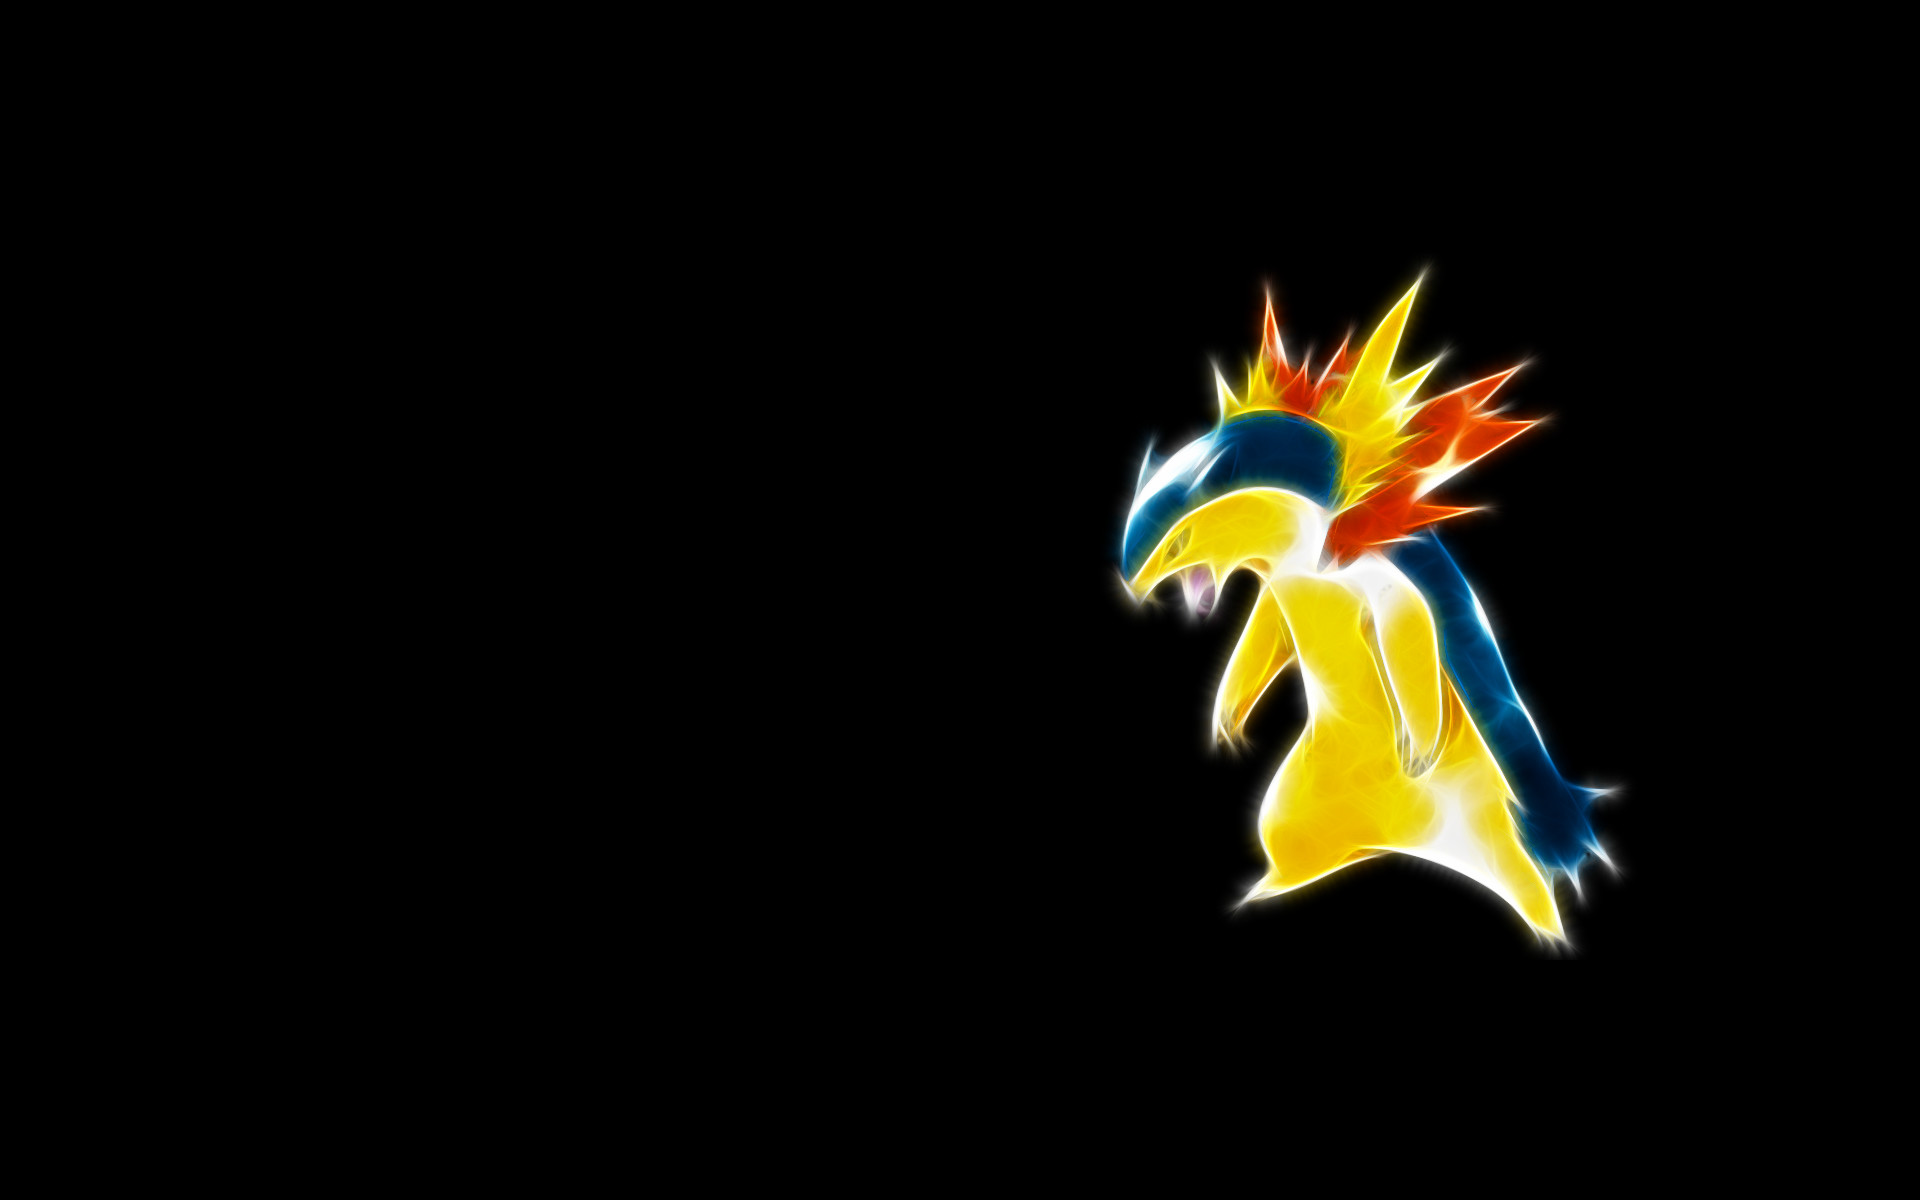 1920x1200 tallteen86 wallpaper cool photostream anime pokemon